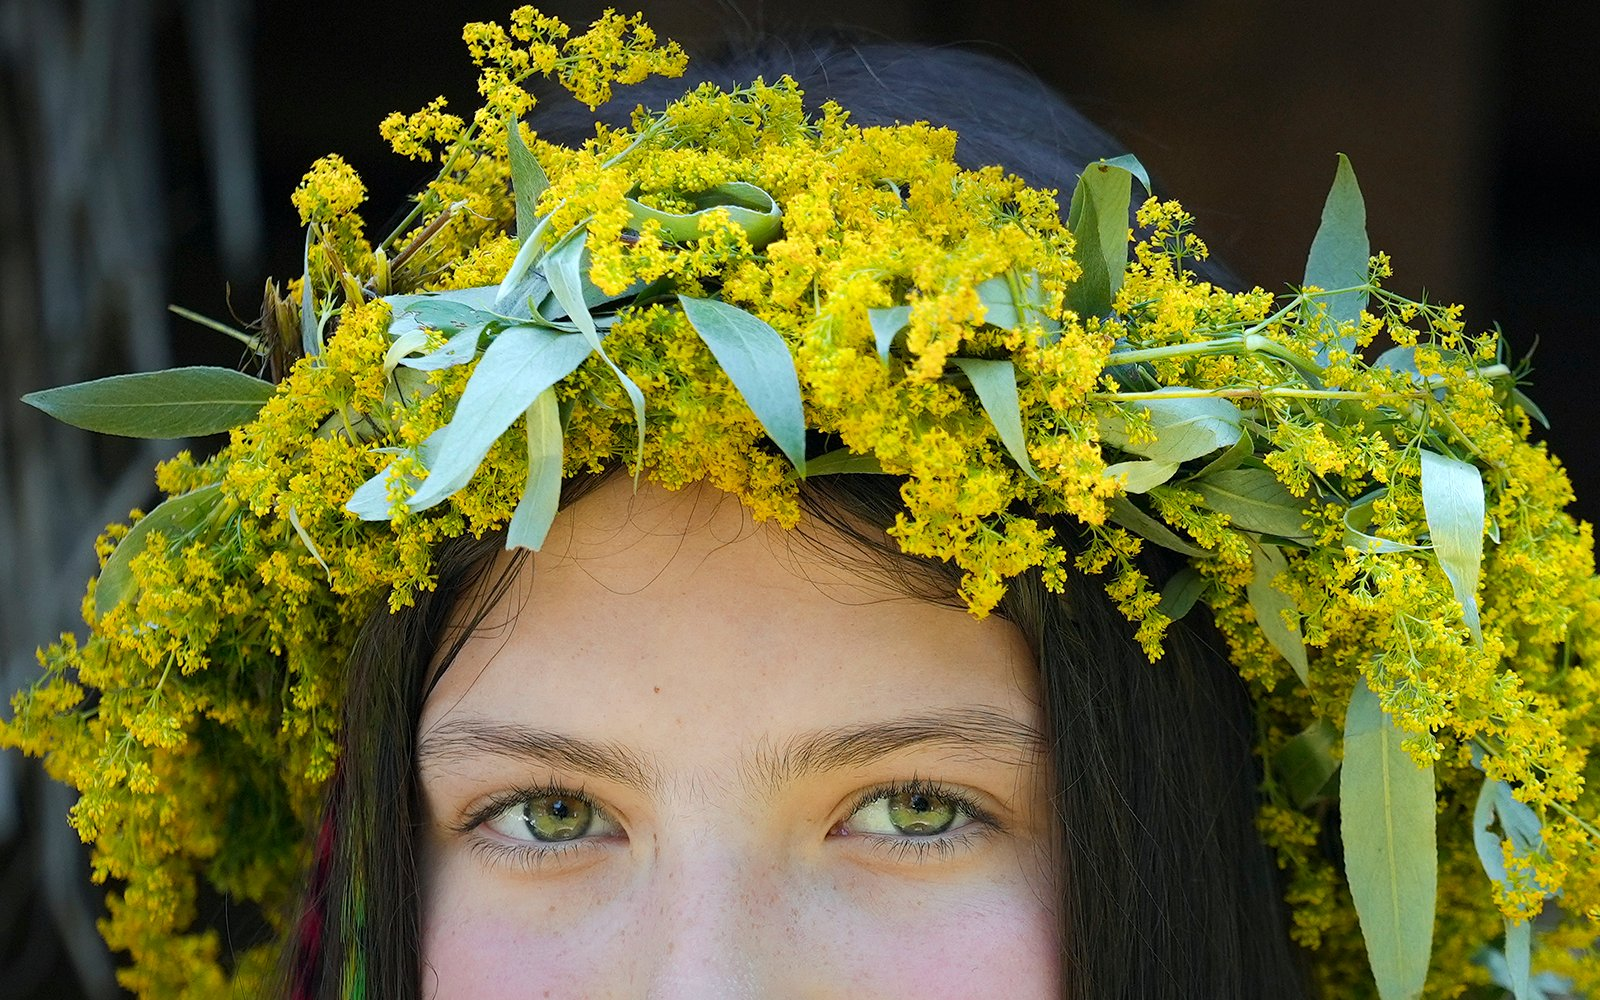 A young girl wearing a wreath of flowers takes part in an event inspired by pre-Christian traditions at the Dimitrie Gusti village museum in Bucharest, Romania on Thursday, June 24, 2021. According to pre-Christian traditions, fairies, called